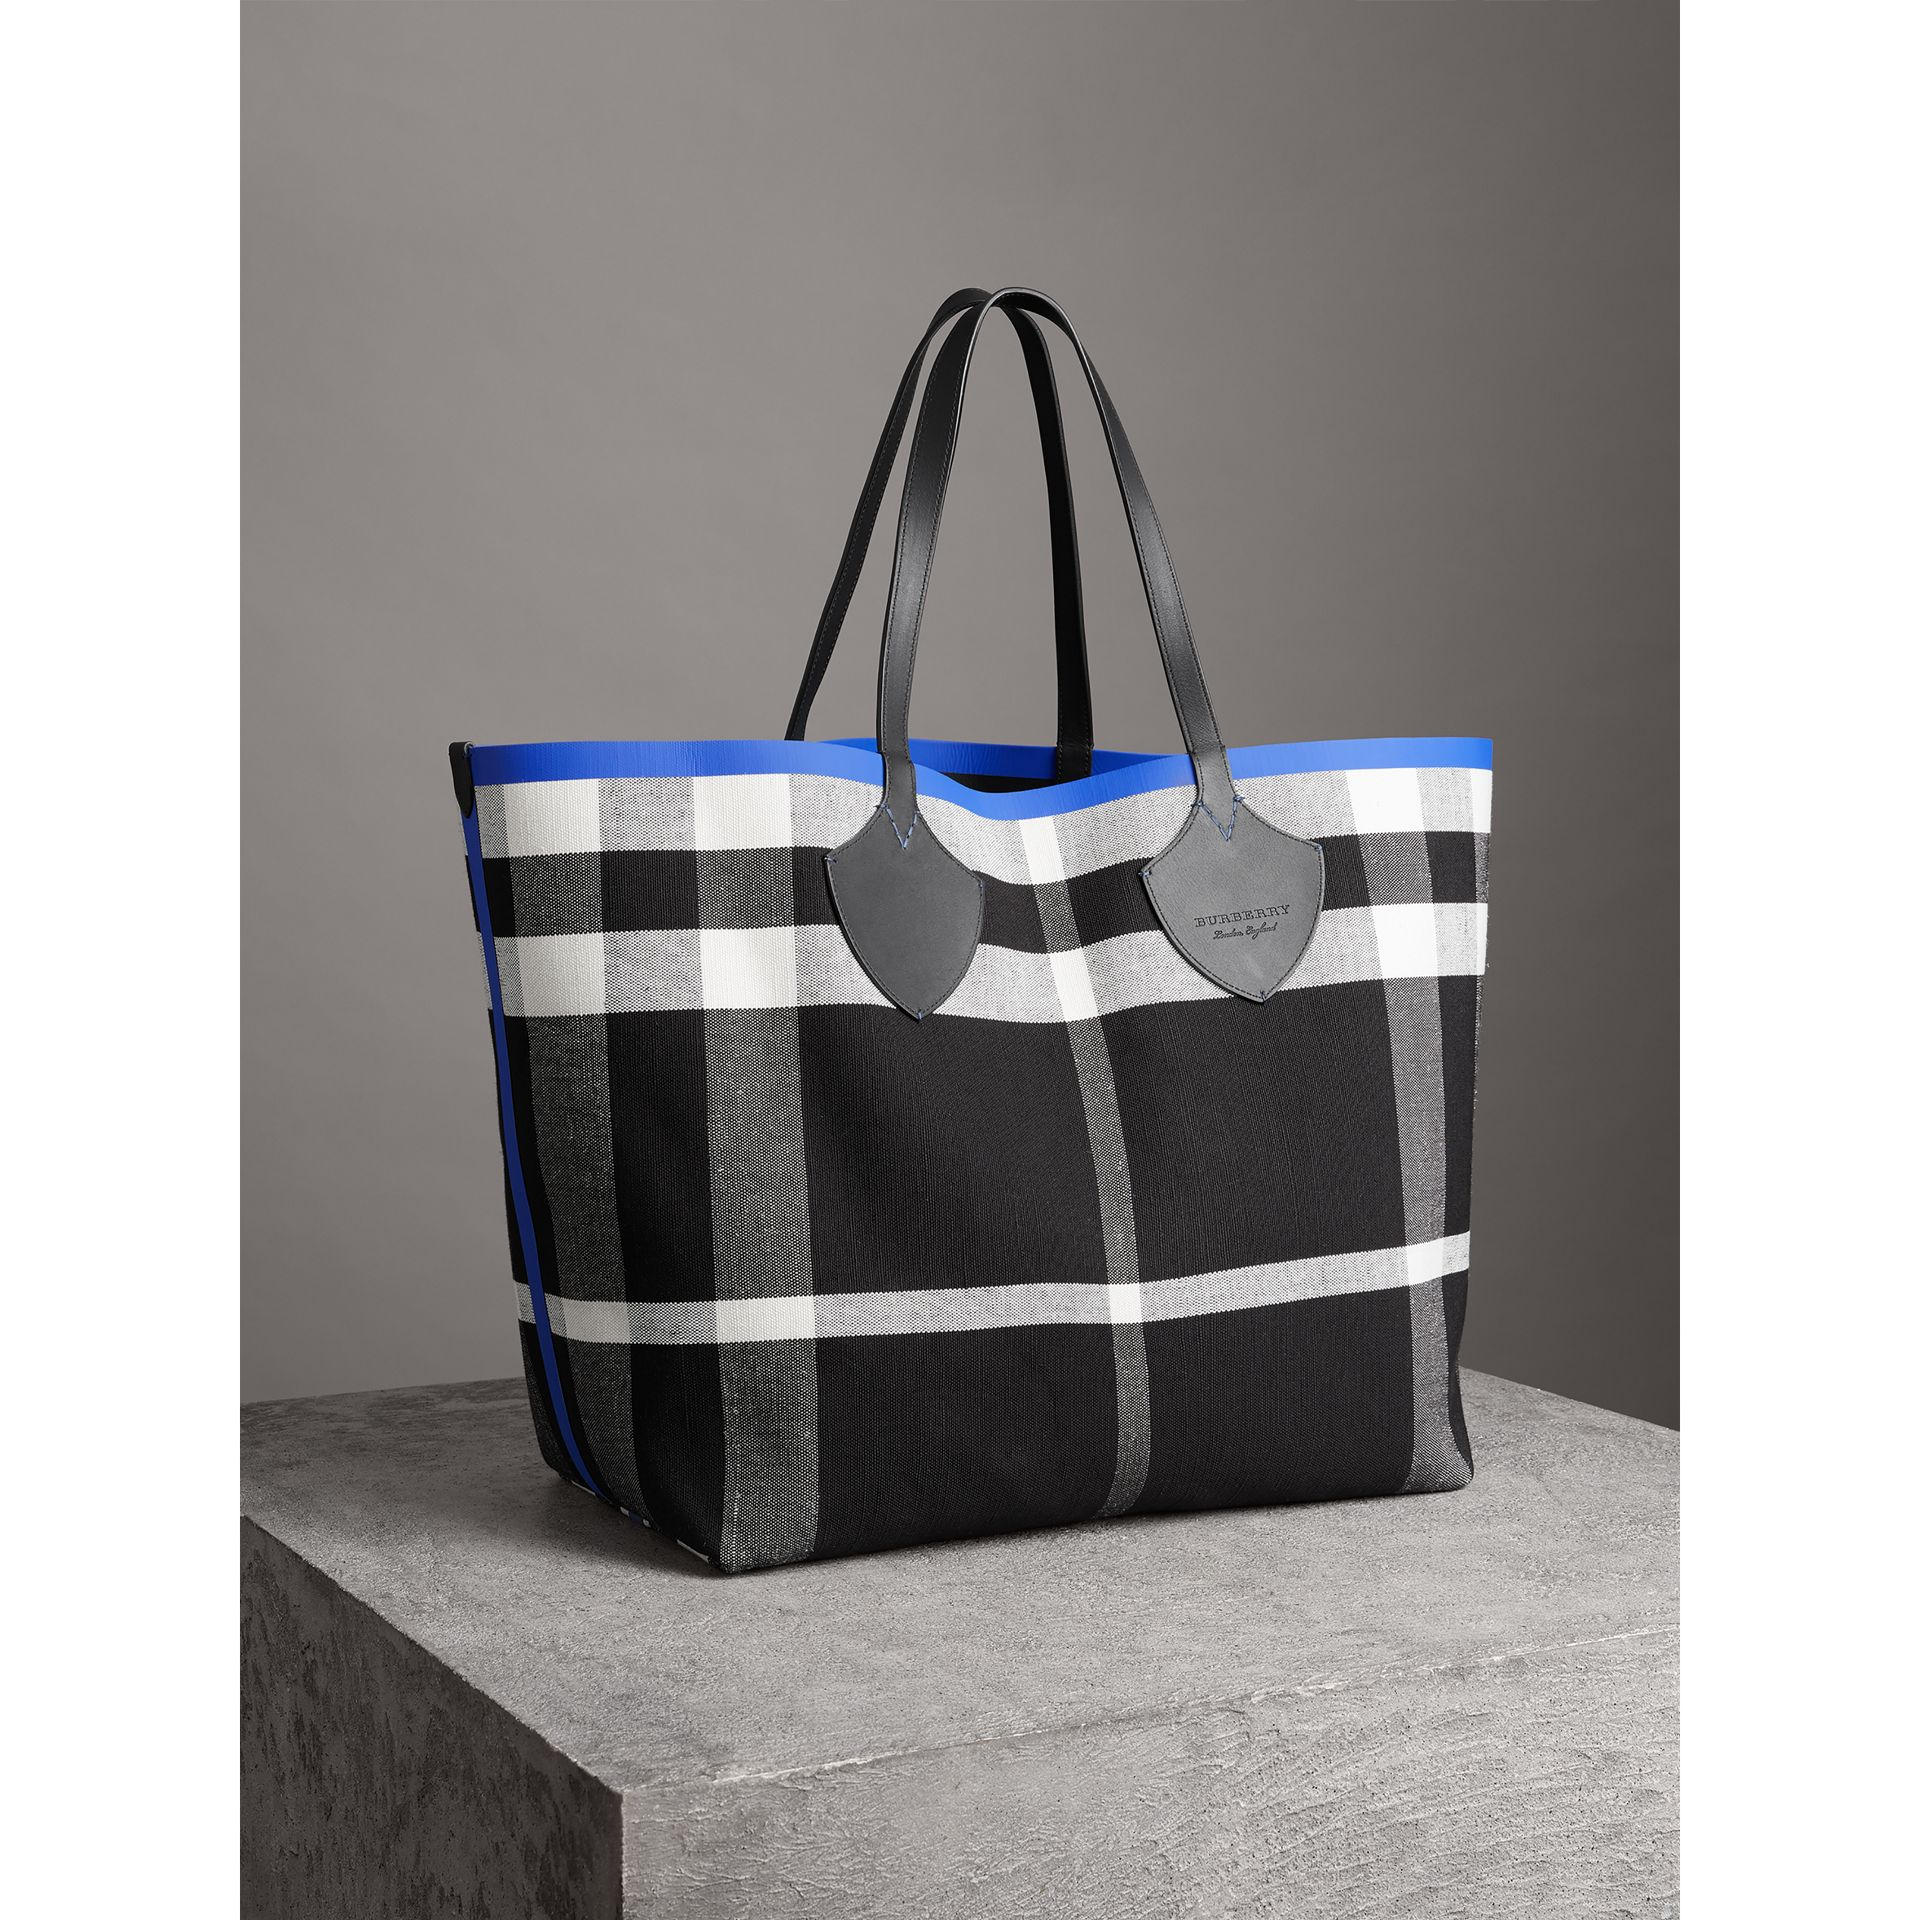 Sac tote The Giant réversible en cuir et coton Canvas check (Myrtille/noir) | Burberry - photo de la galerie 4